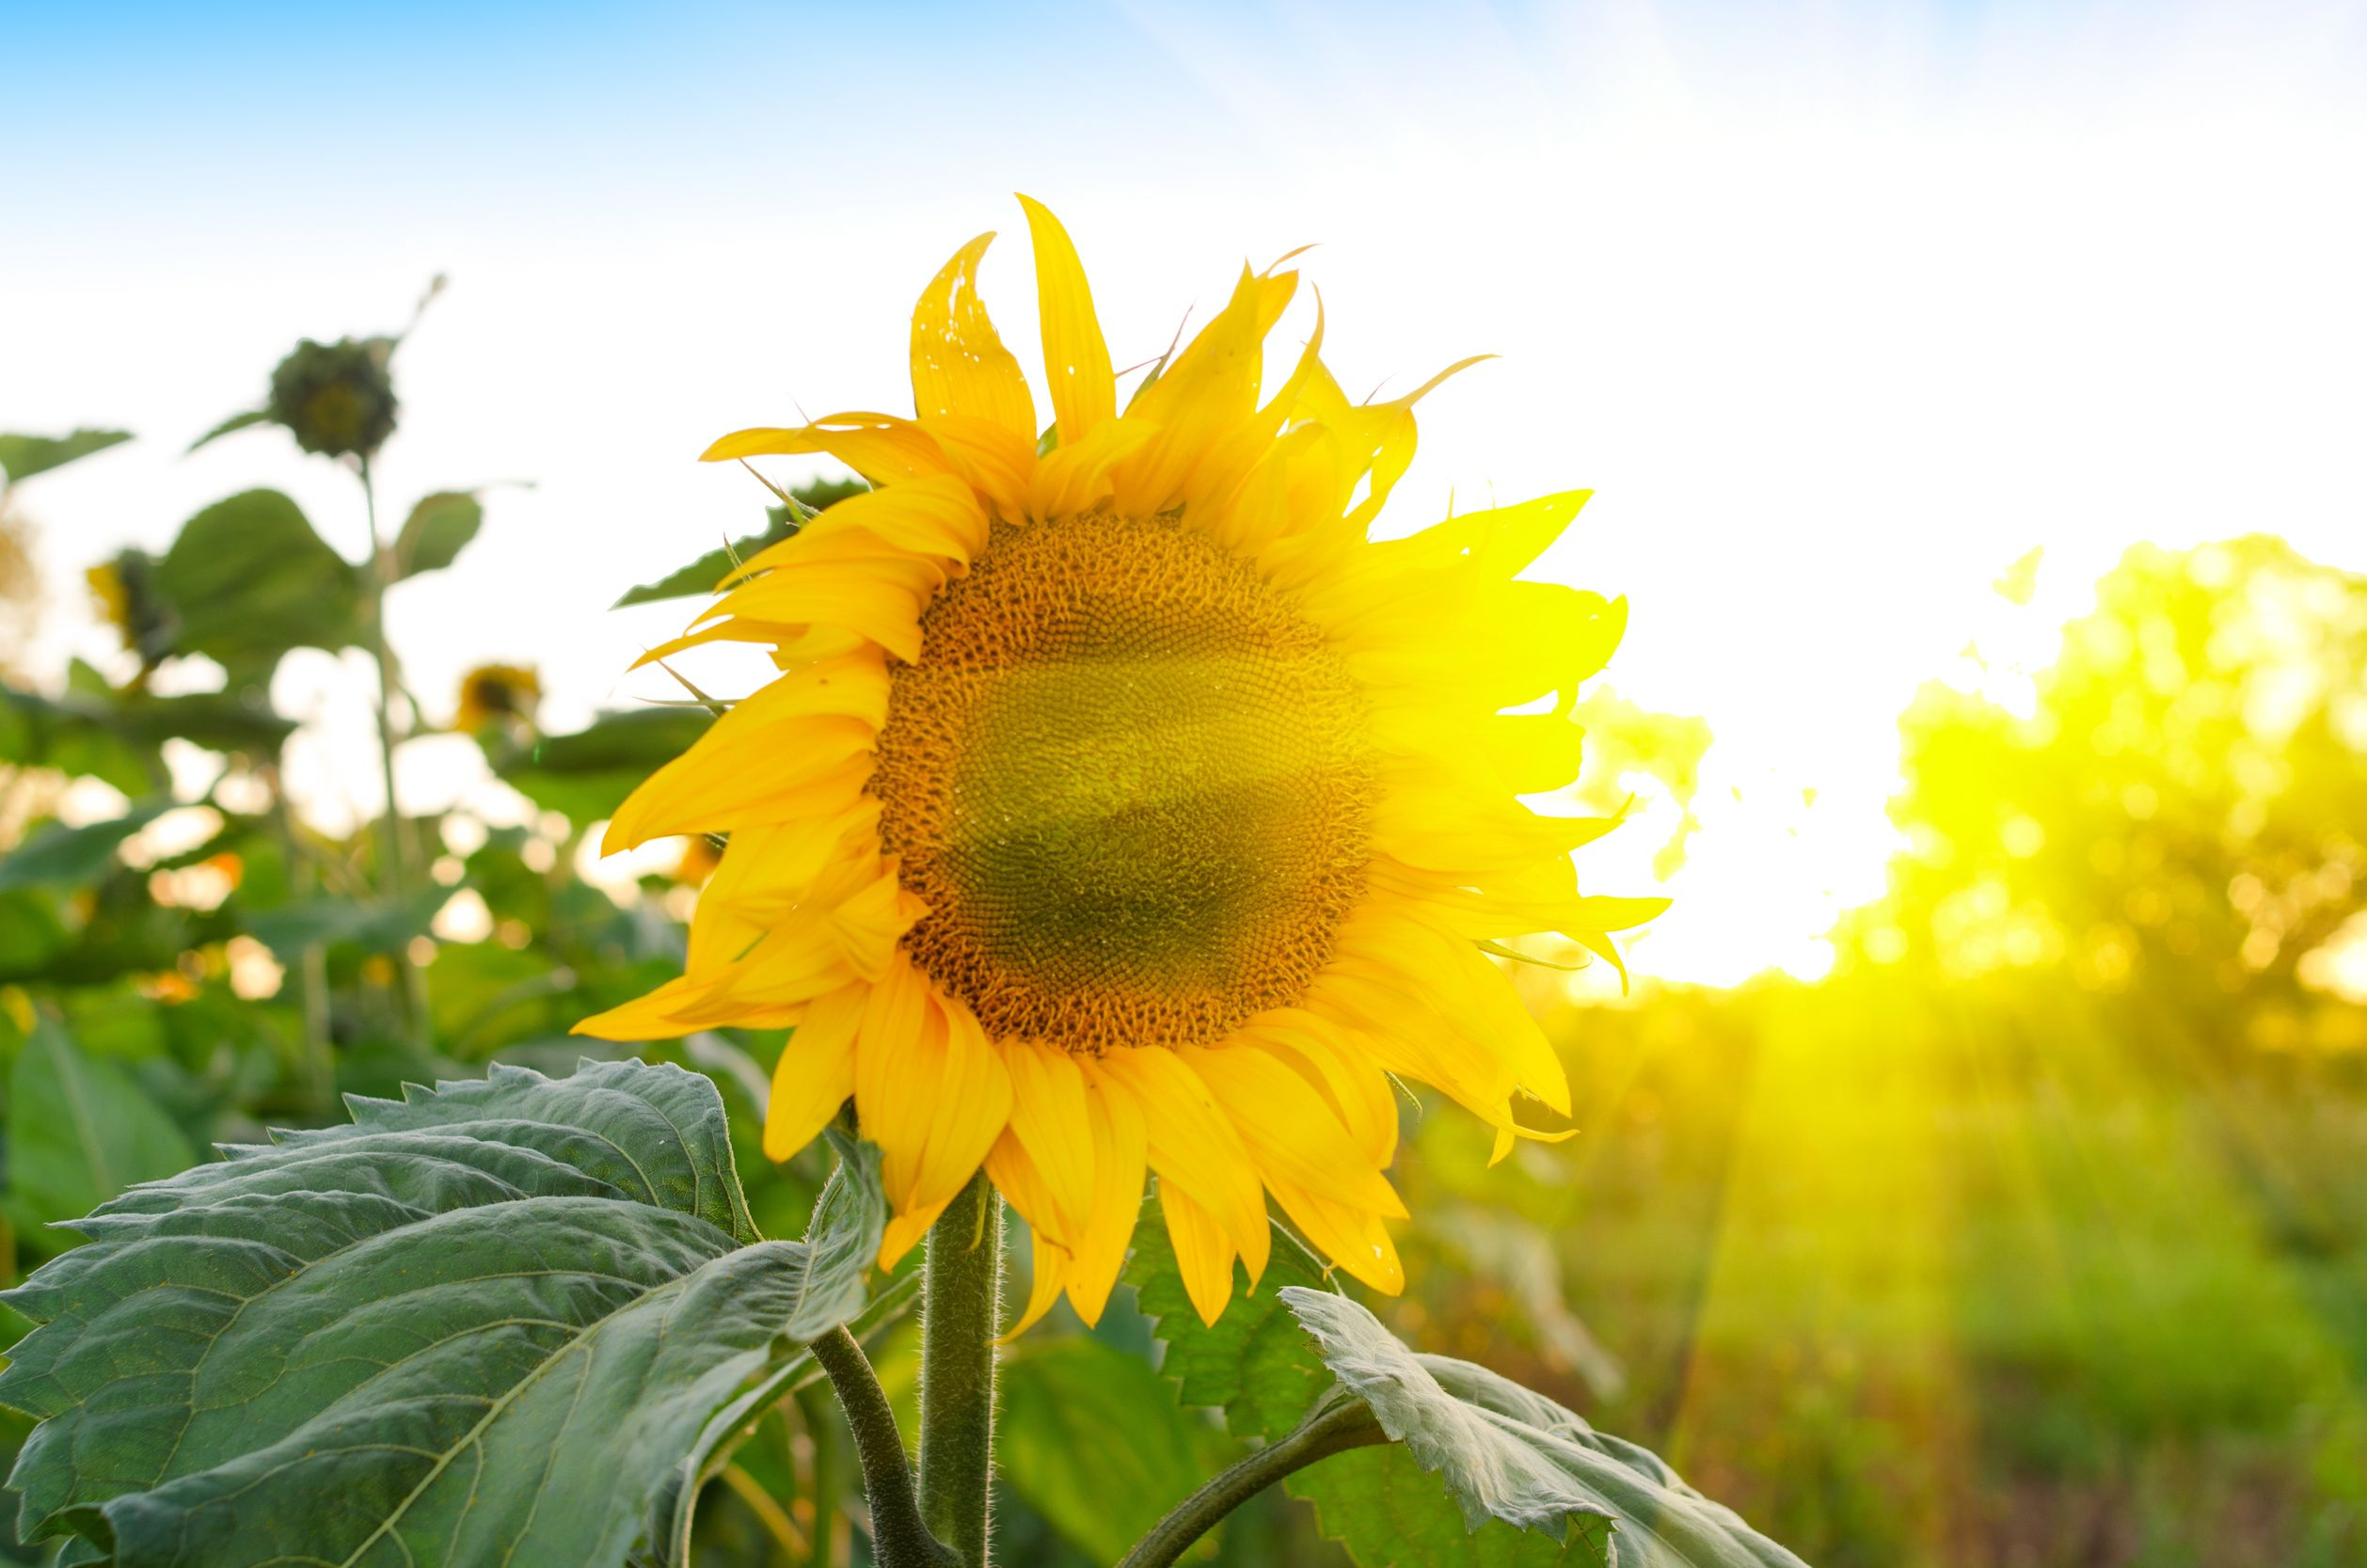 10477629 - beautiful sunflowers at field with blue sky and sunburst